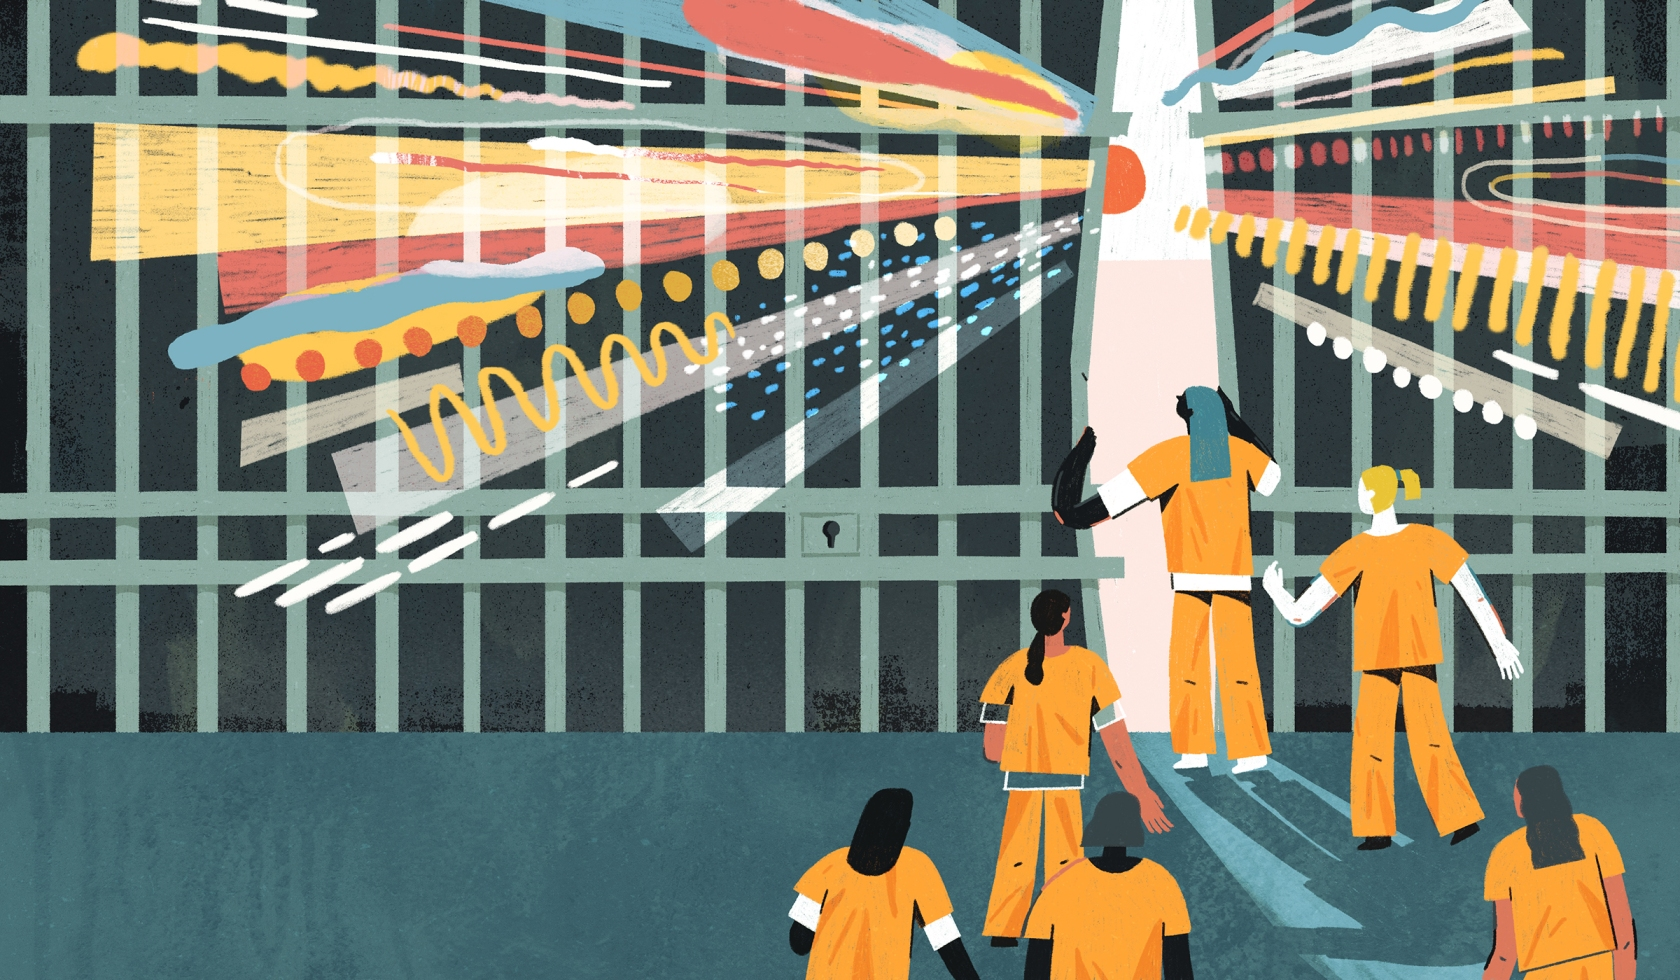 Stripped: The Search for Human Rights in US Women's Prisons